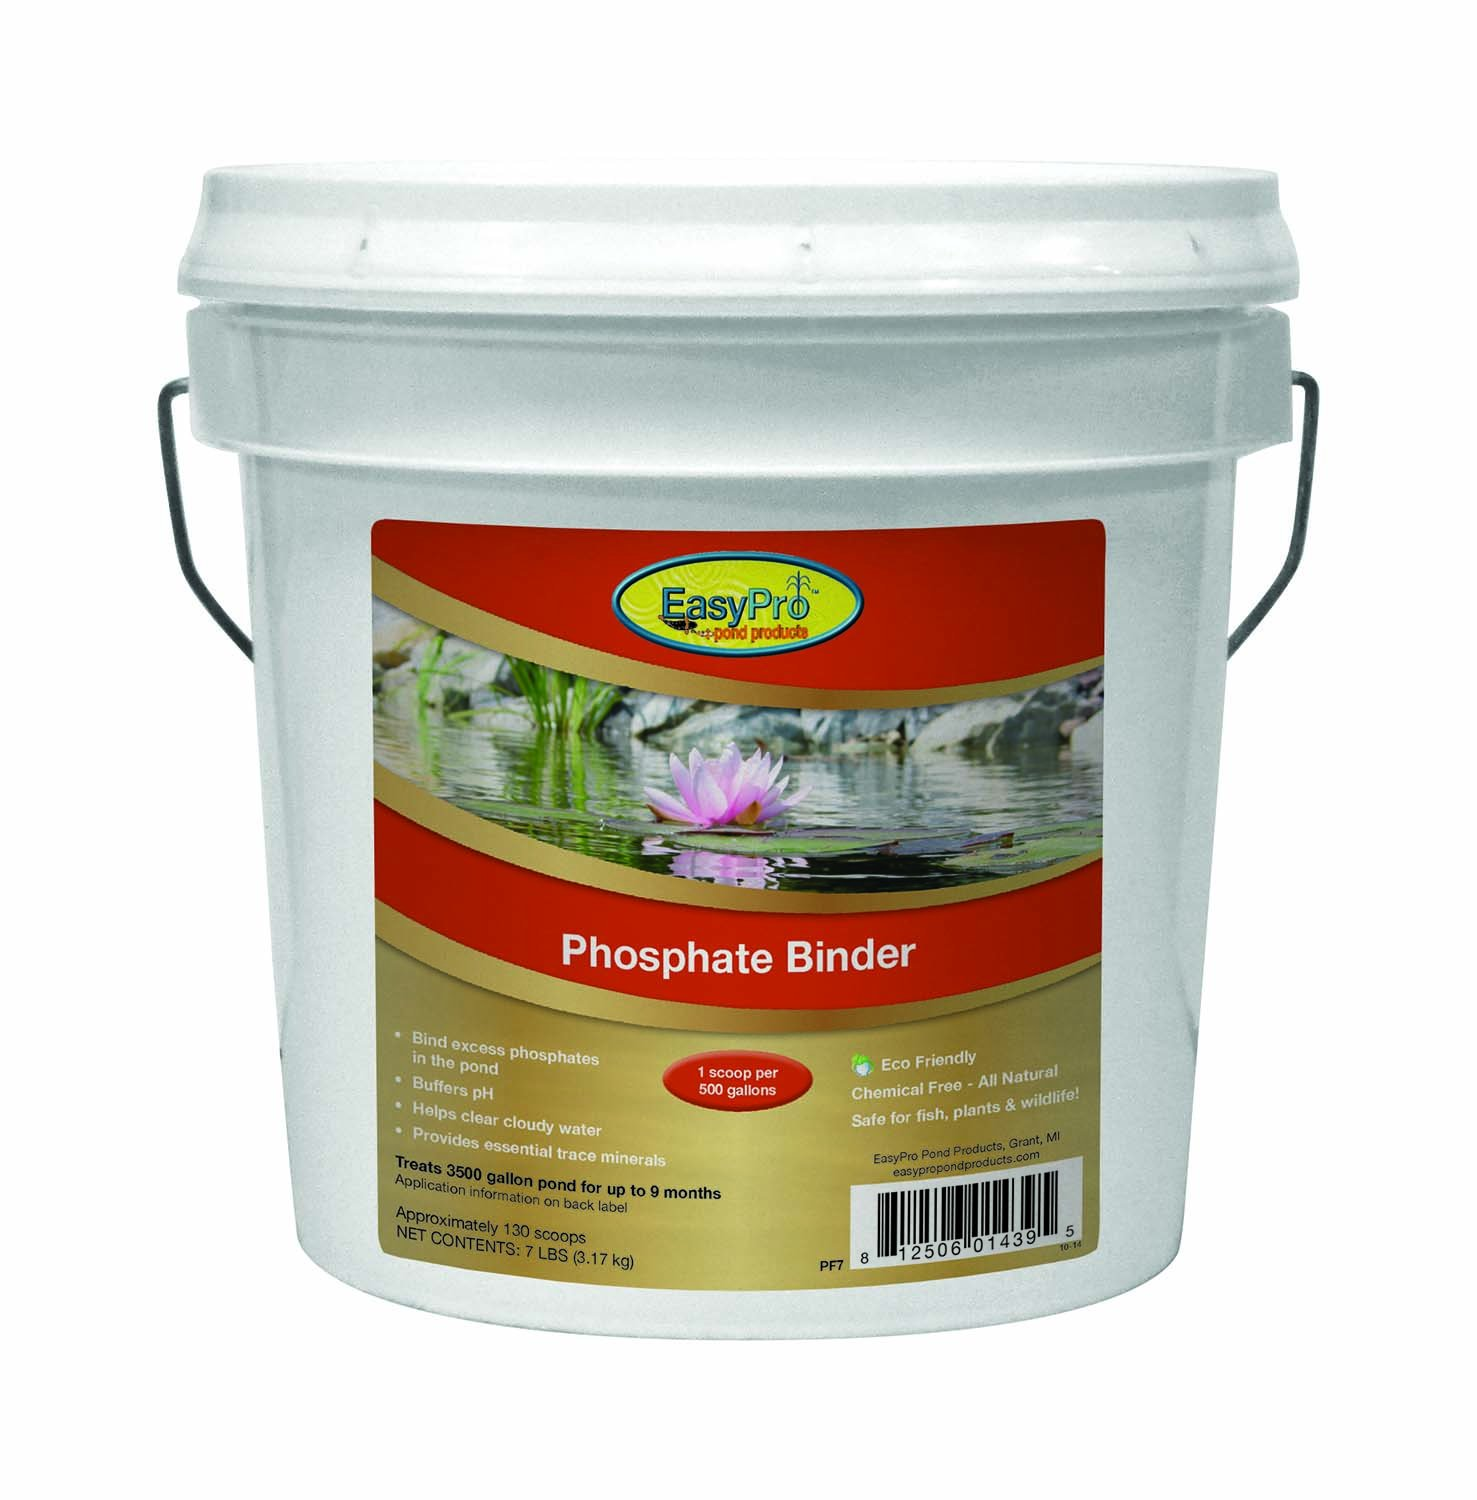 EasyPro Products PF7 All Natural Phosphate Binder by EasyPro Pond Products